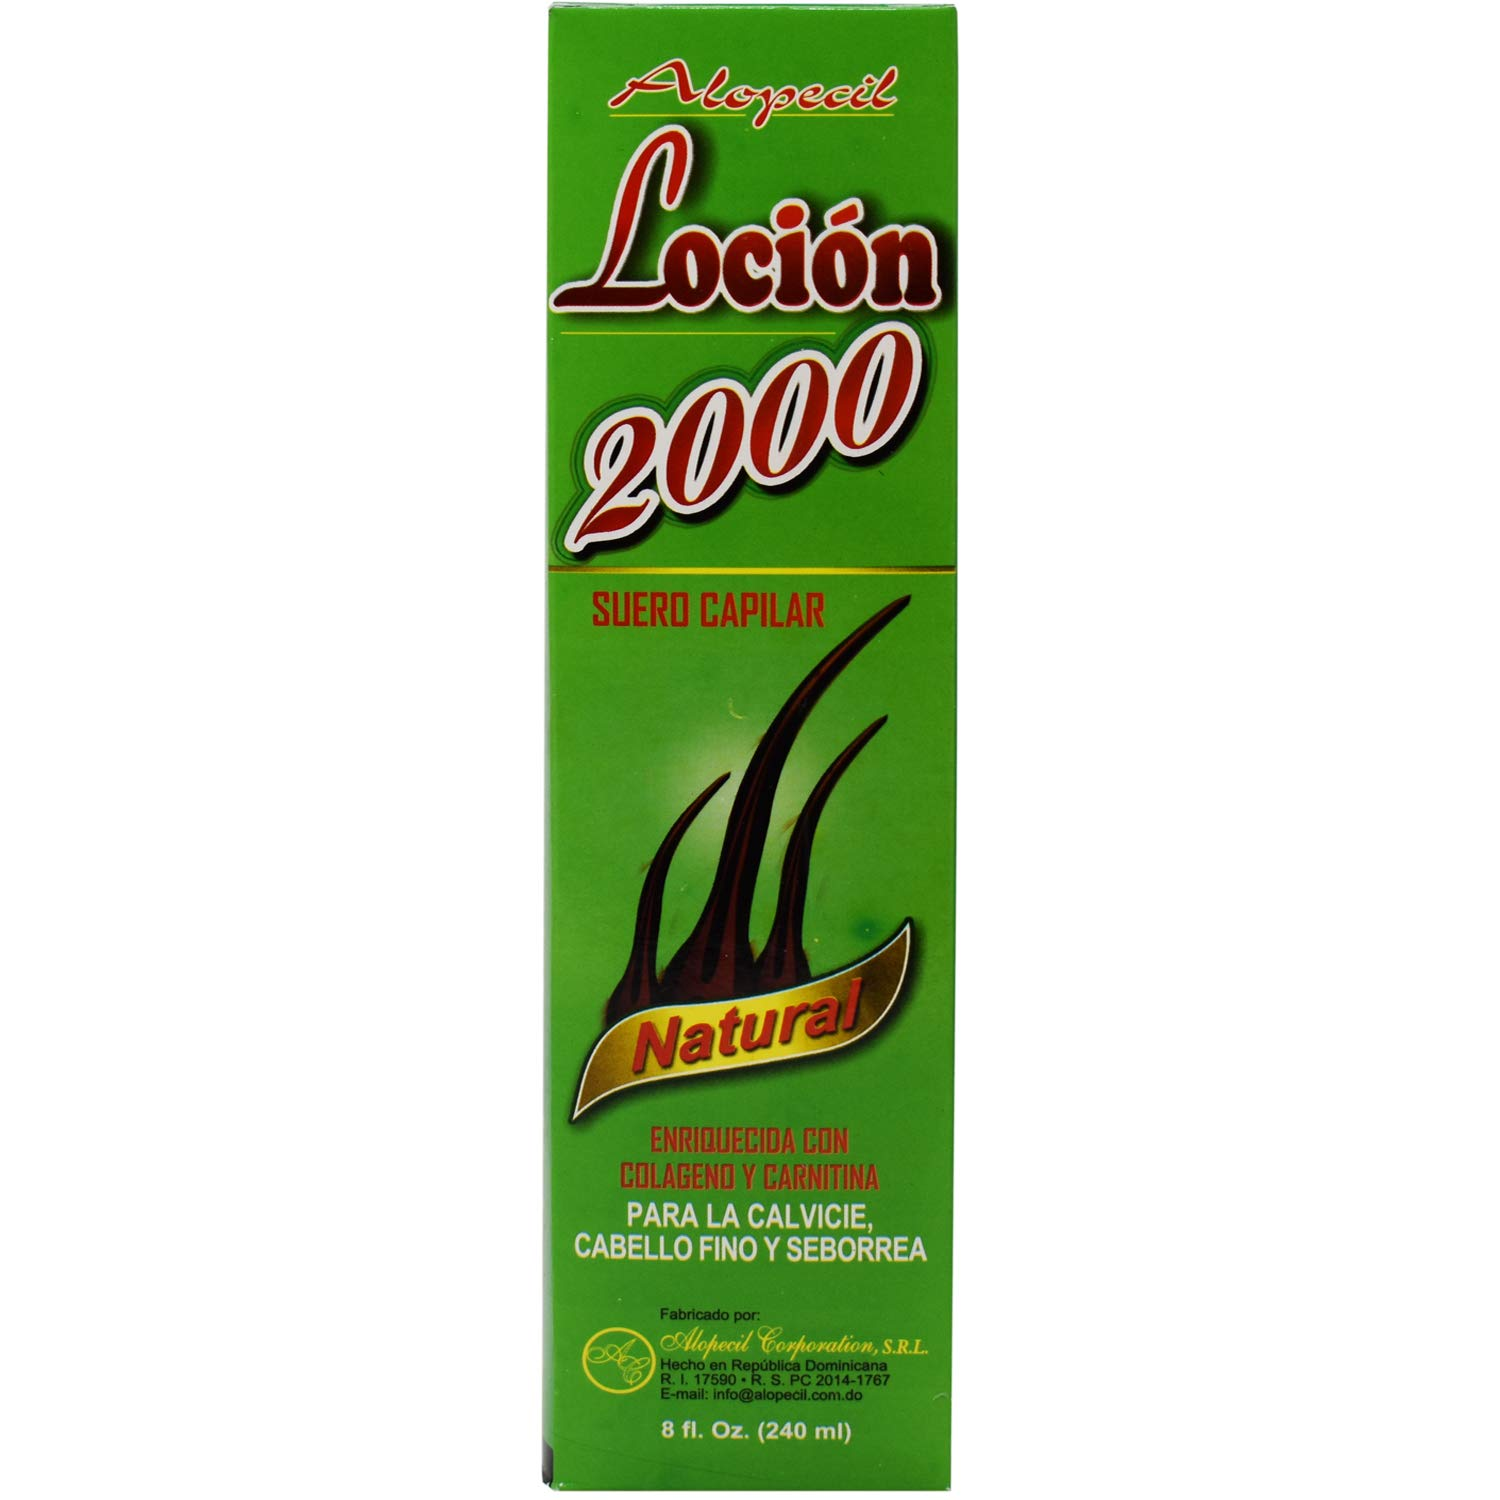 Amazon.com : Locion 2000 Biological Scalp Serum [SEALED] : Hair Regrowth Treatments : Beauty